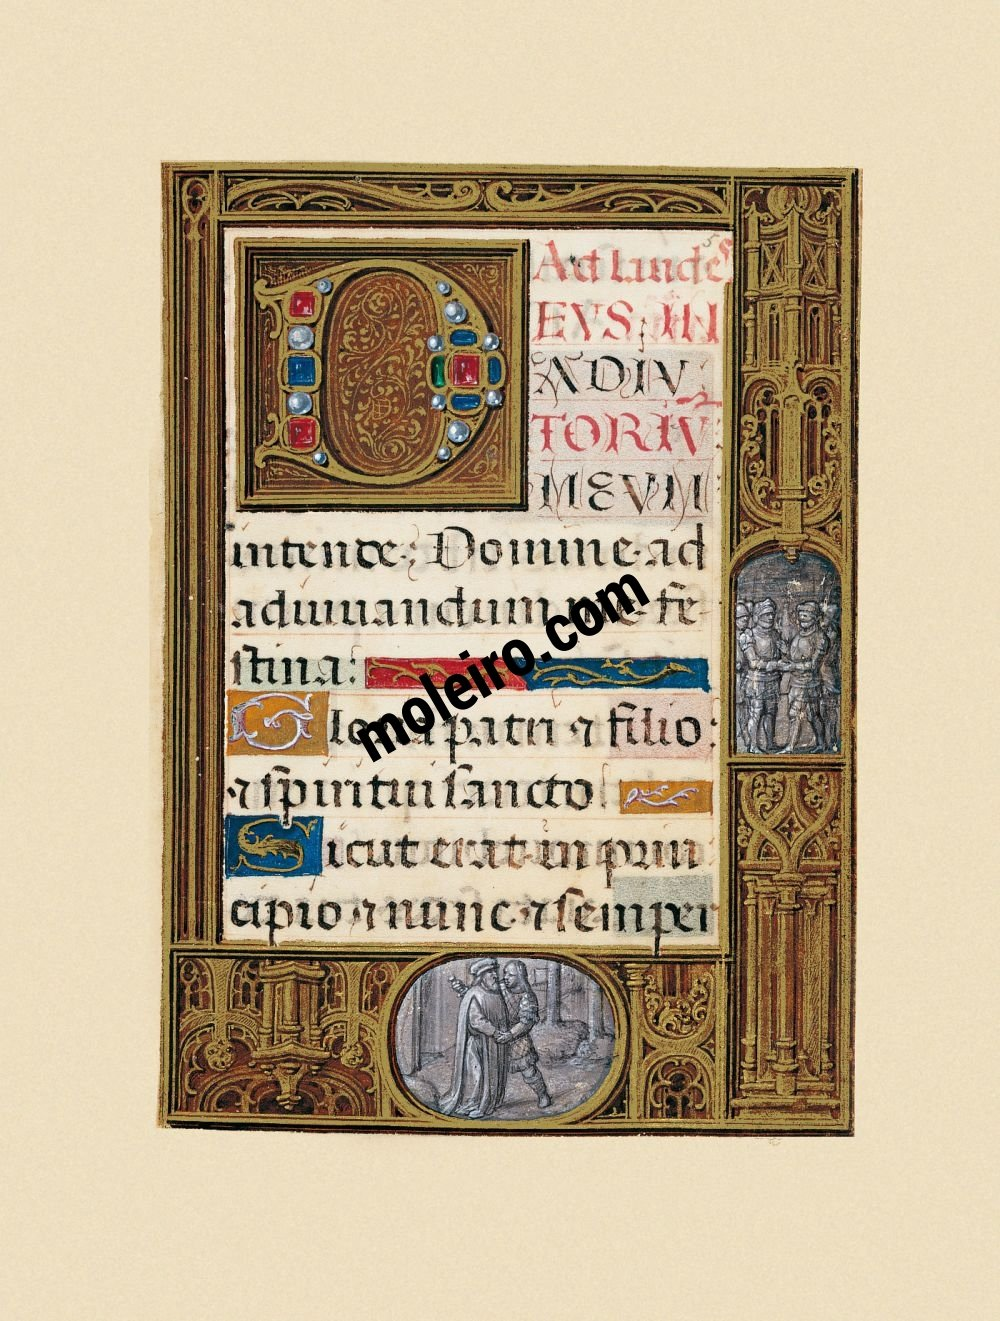 The Golf Book (Book of Hours) f. 5r, Hours of the Virgin – Laudes